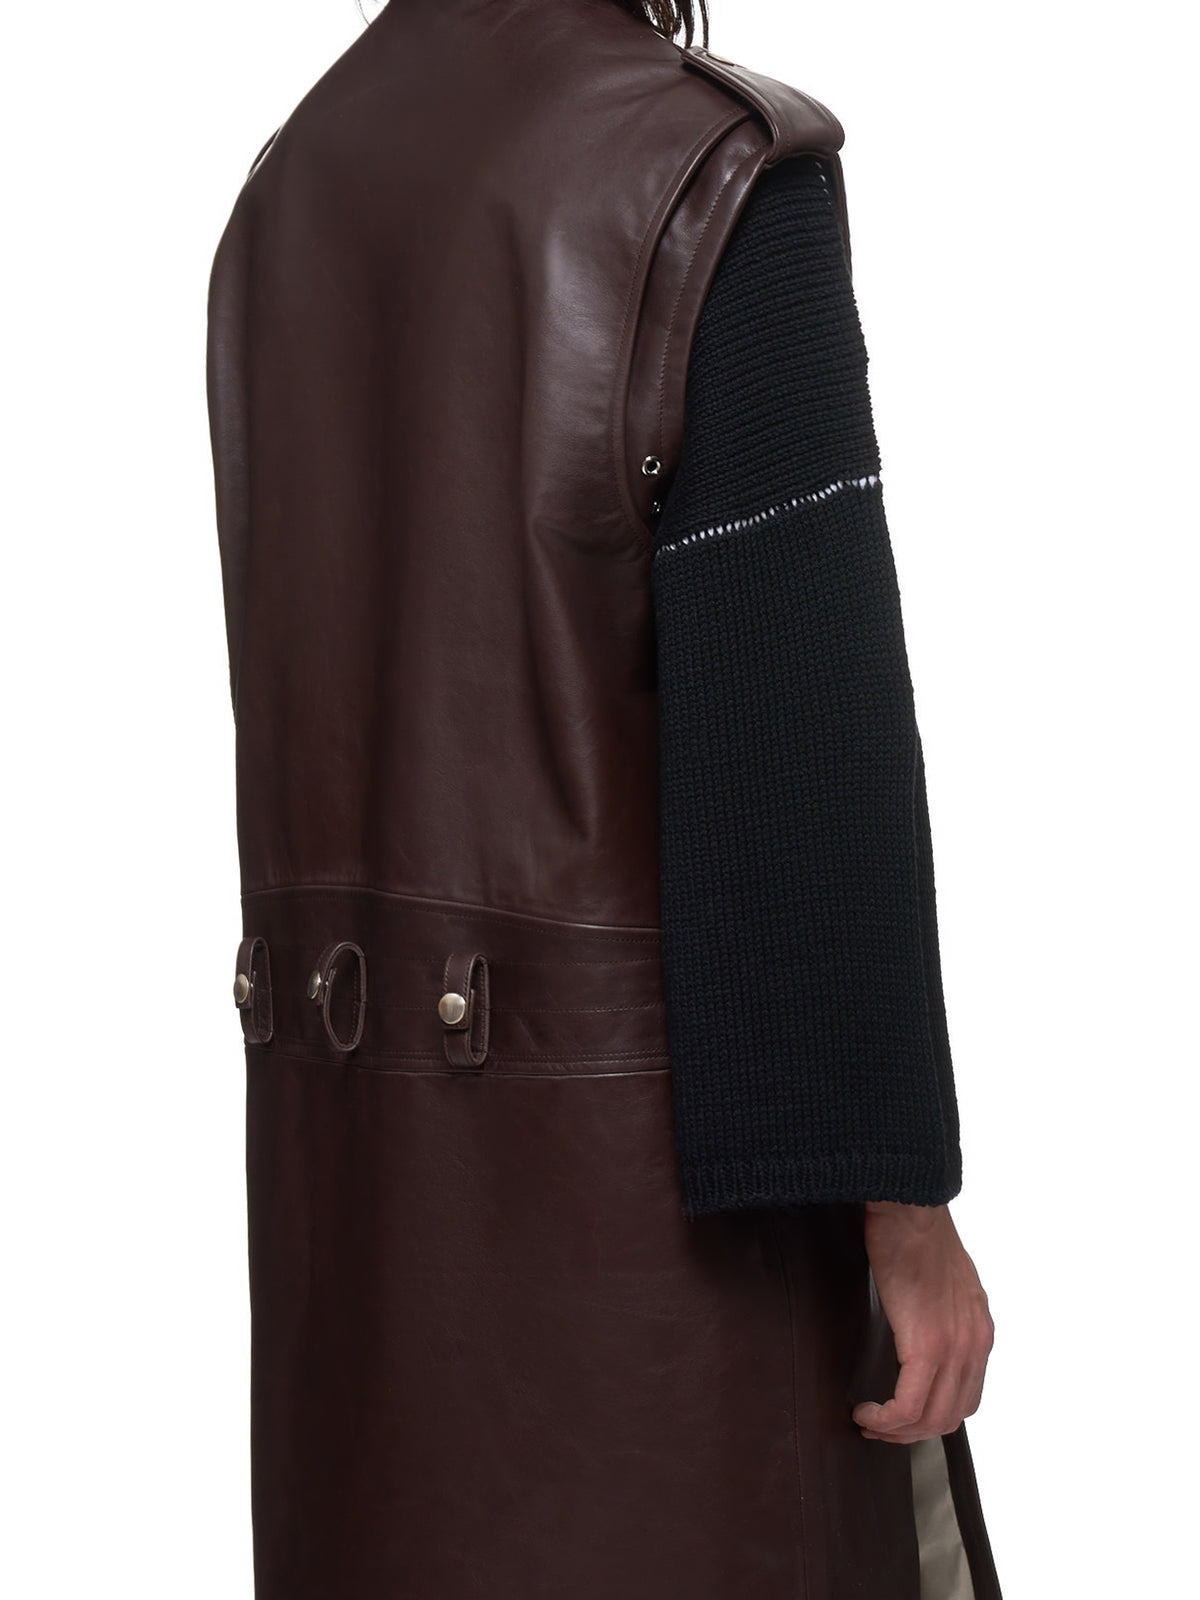 Raf Simons Leather Vest - Hlorenzo Detail 2